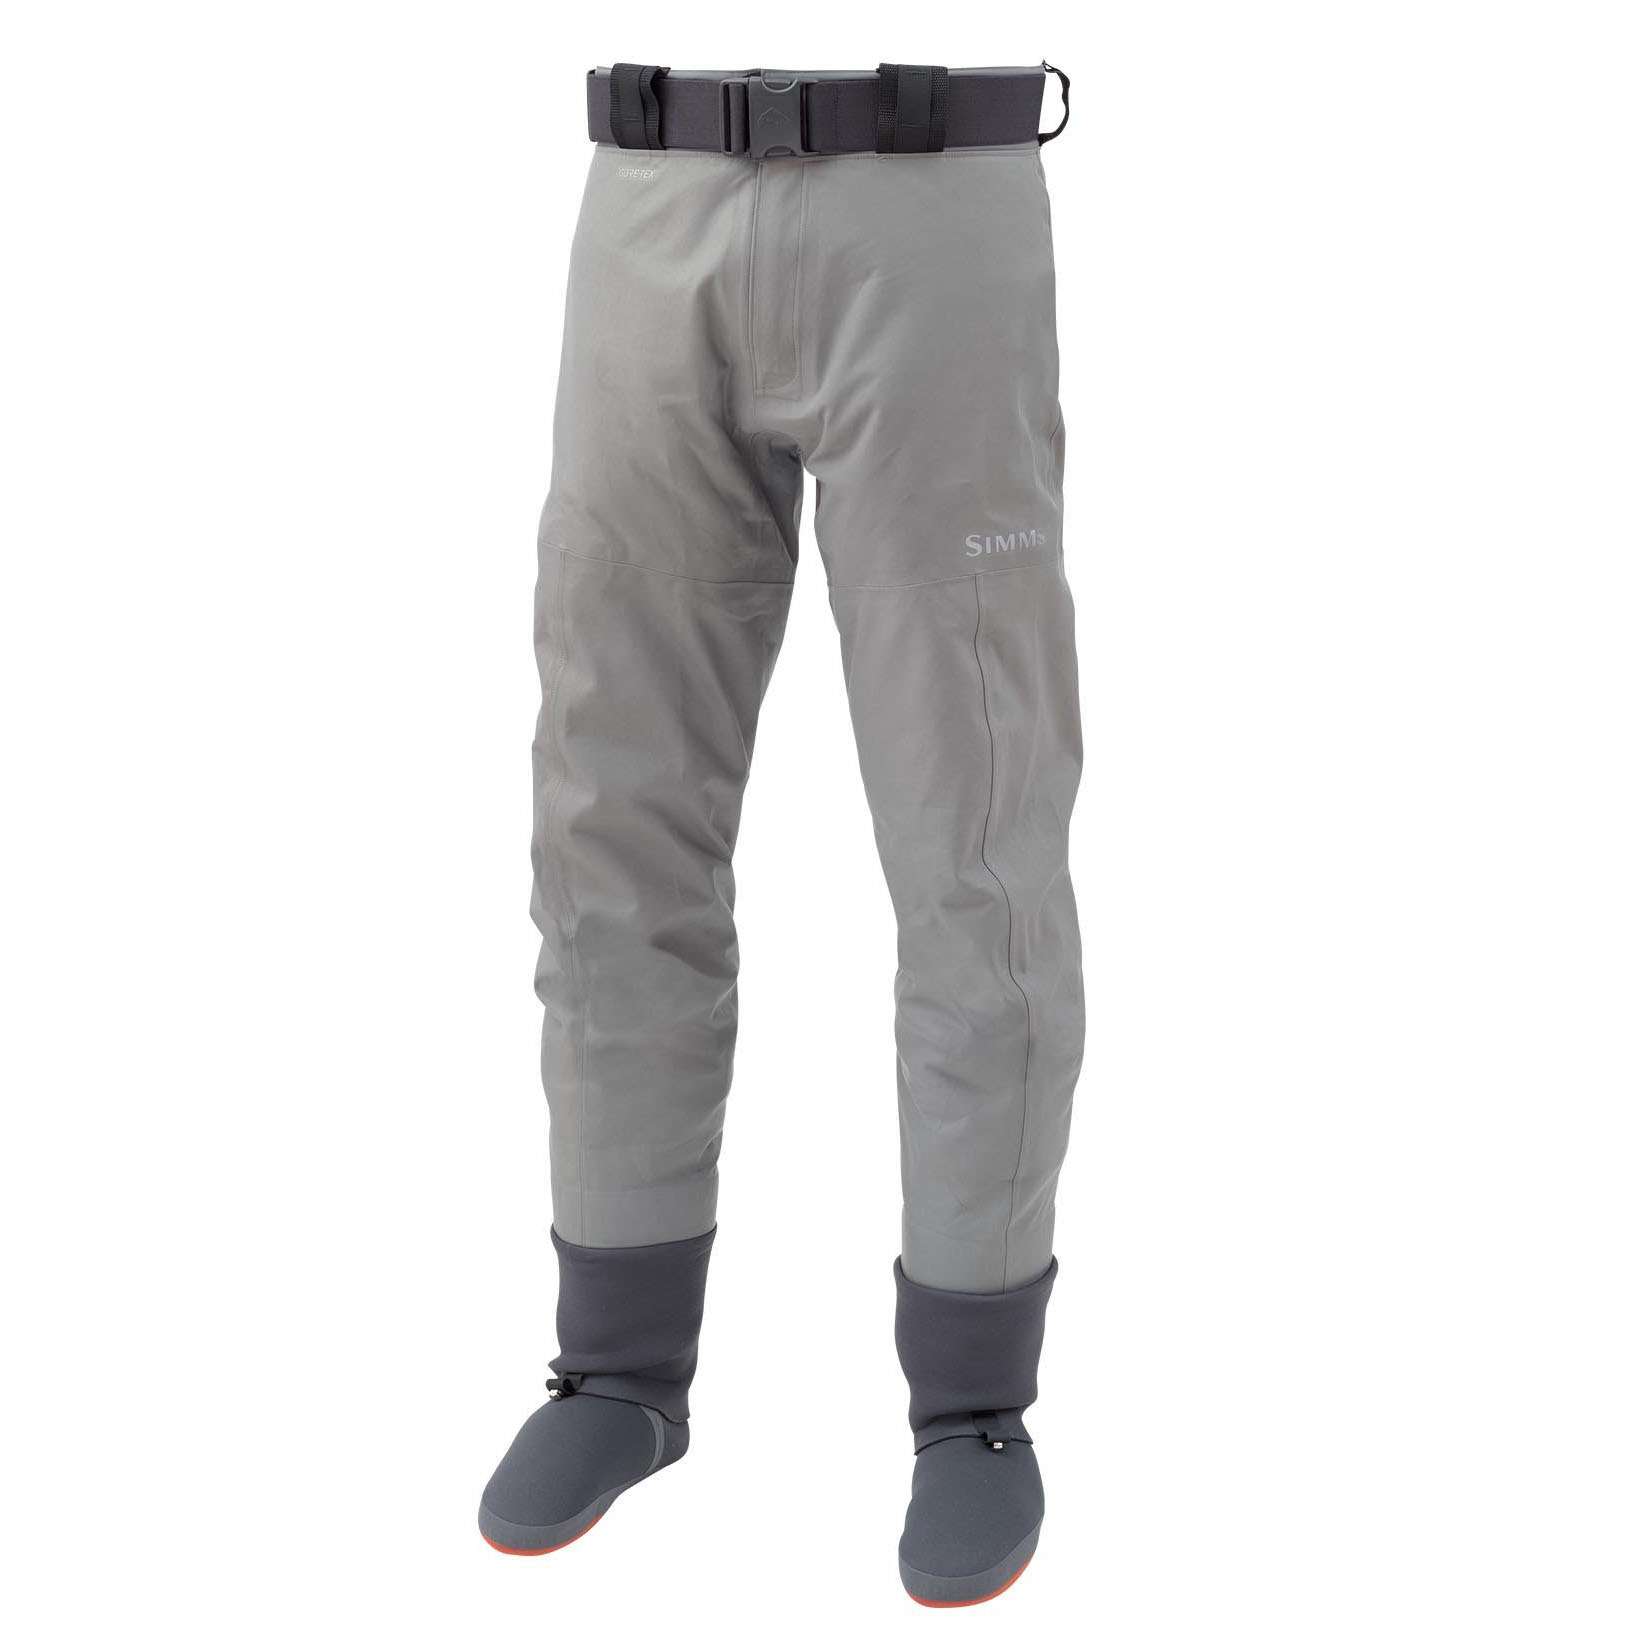 G3 GUIDE™ WADING PANT